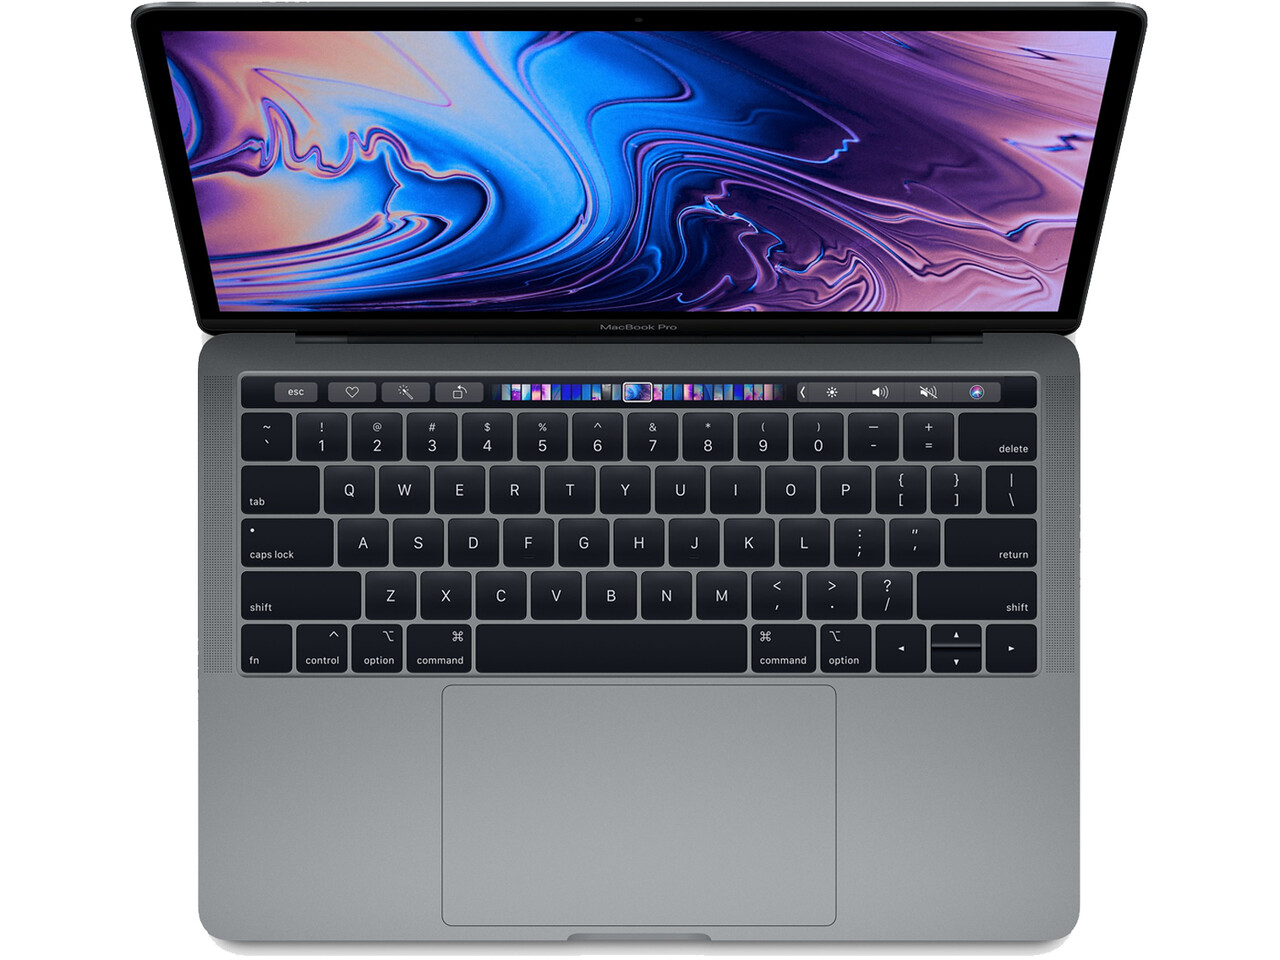 macbook pro 13 inch touch bar 2018 space gray